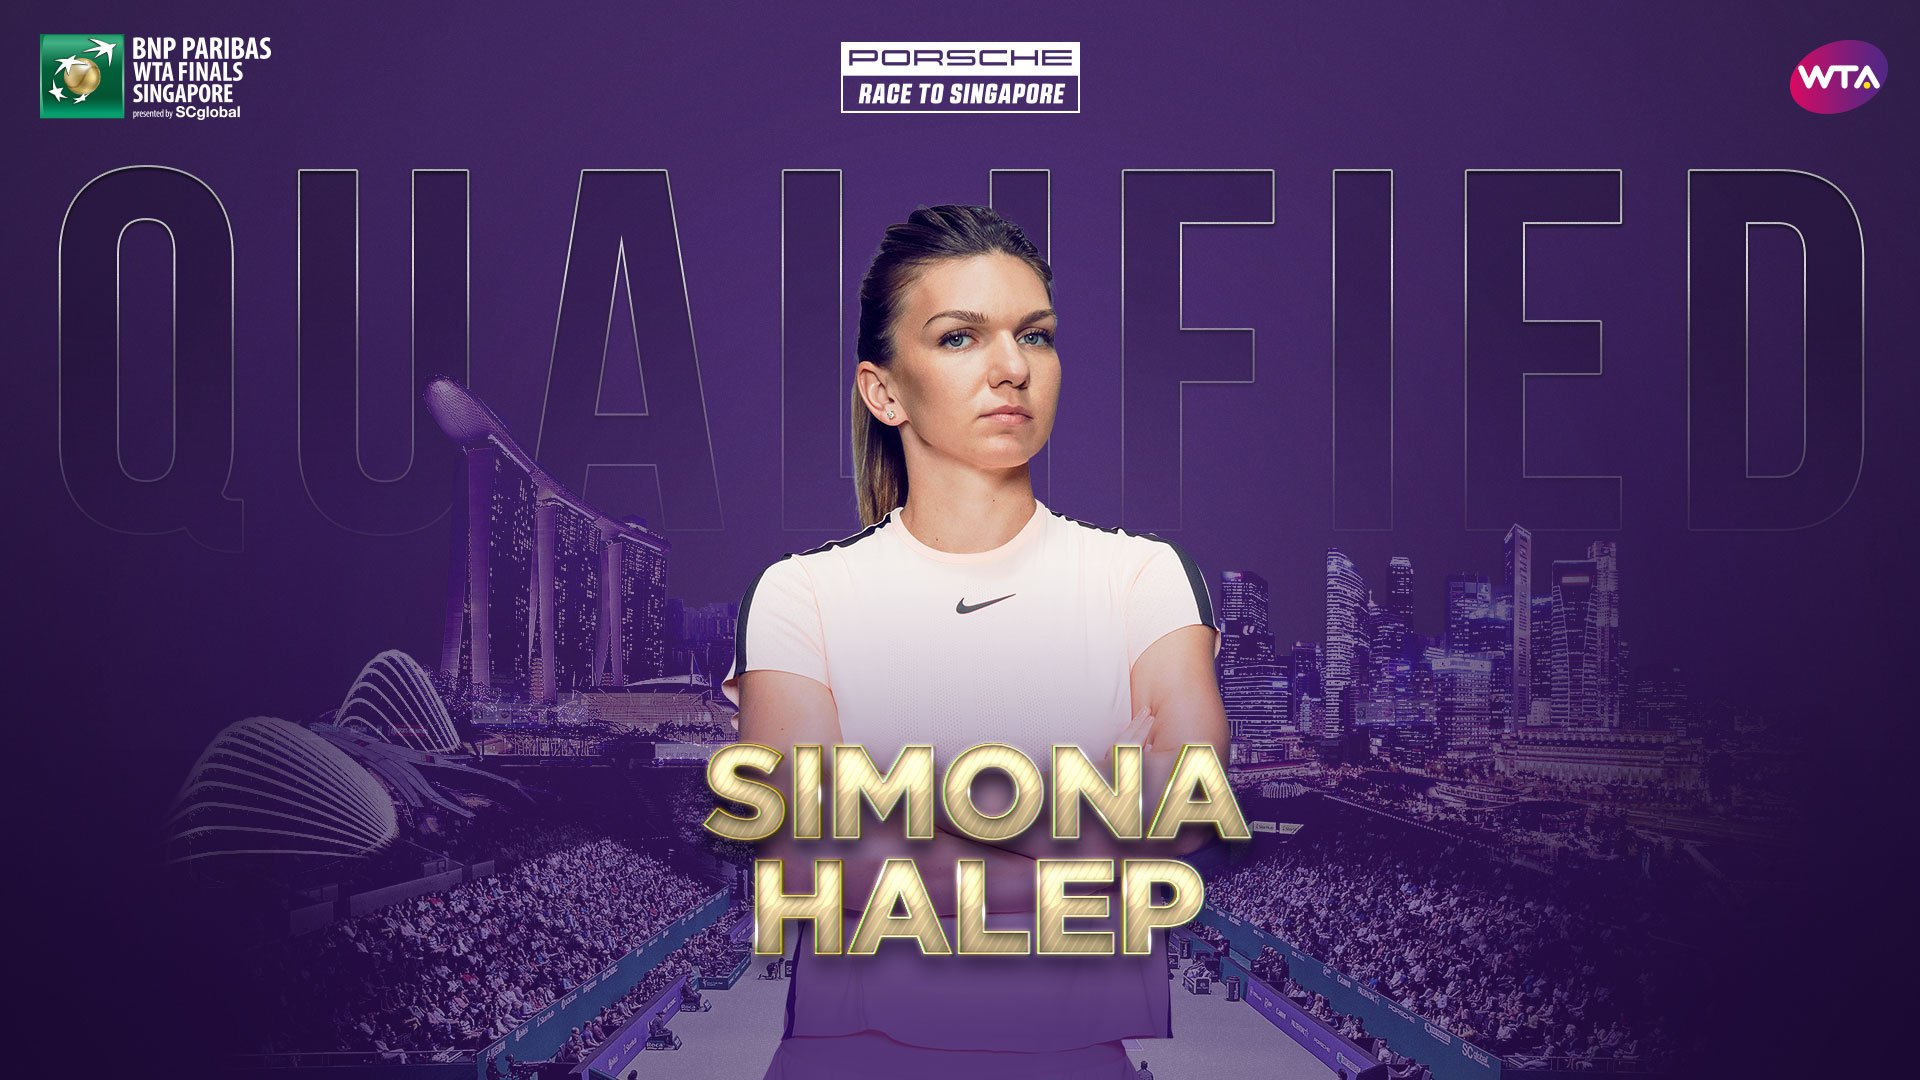 .@Simona_Halep is the first player to qualify for @WTAFinalsSG--> https://t.co/1Fe5kBZoYJ  @Porsche https://t.co/gIhBlxE4MW